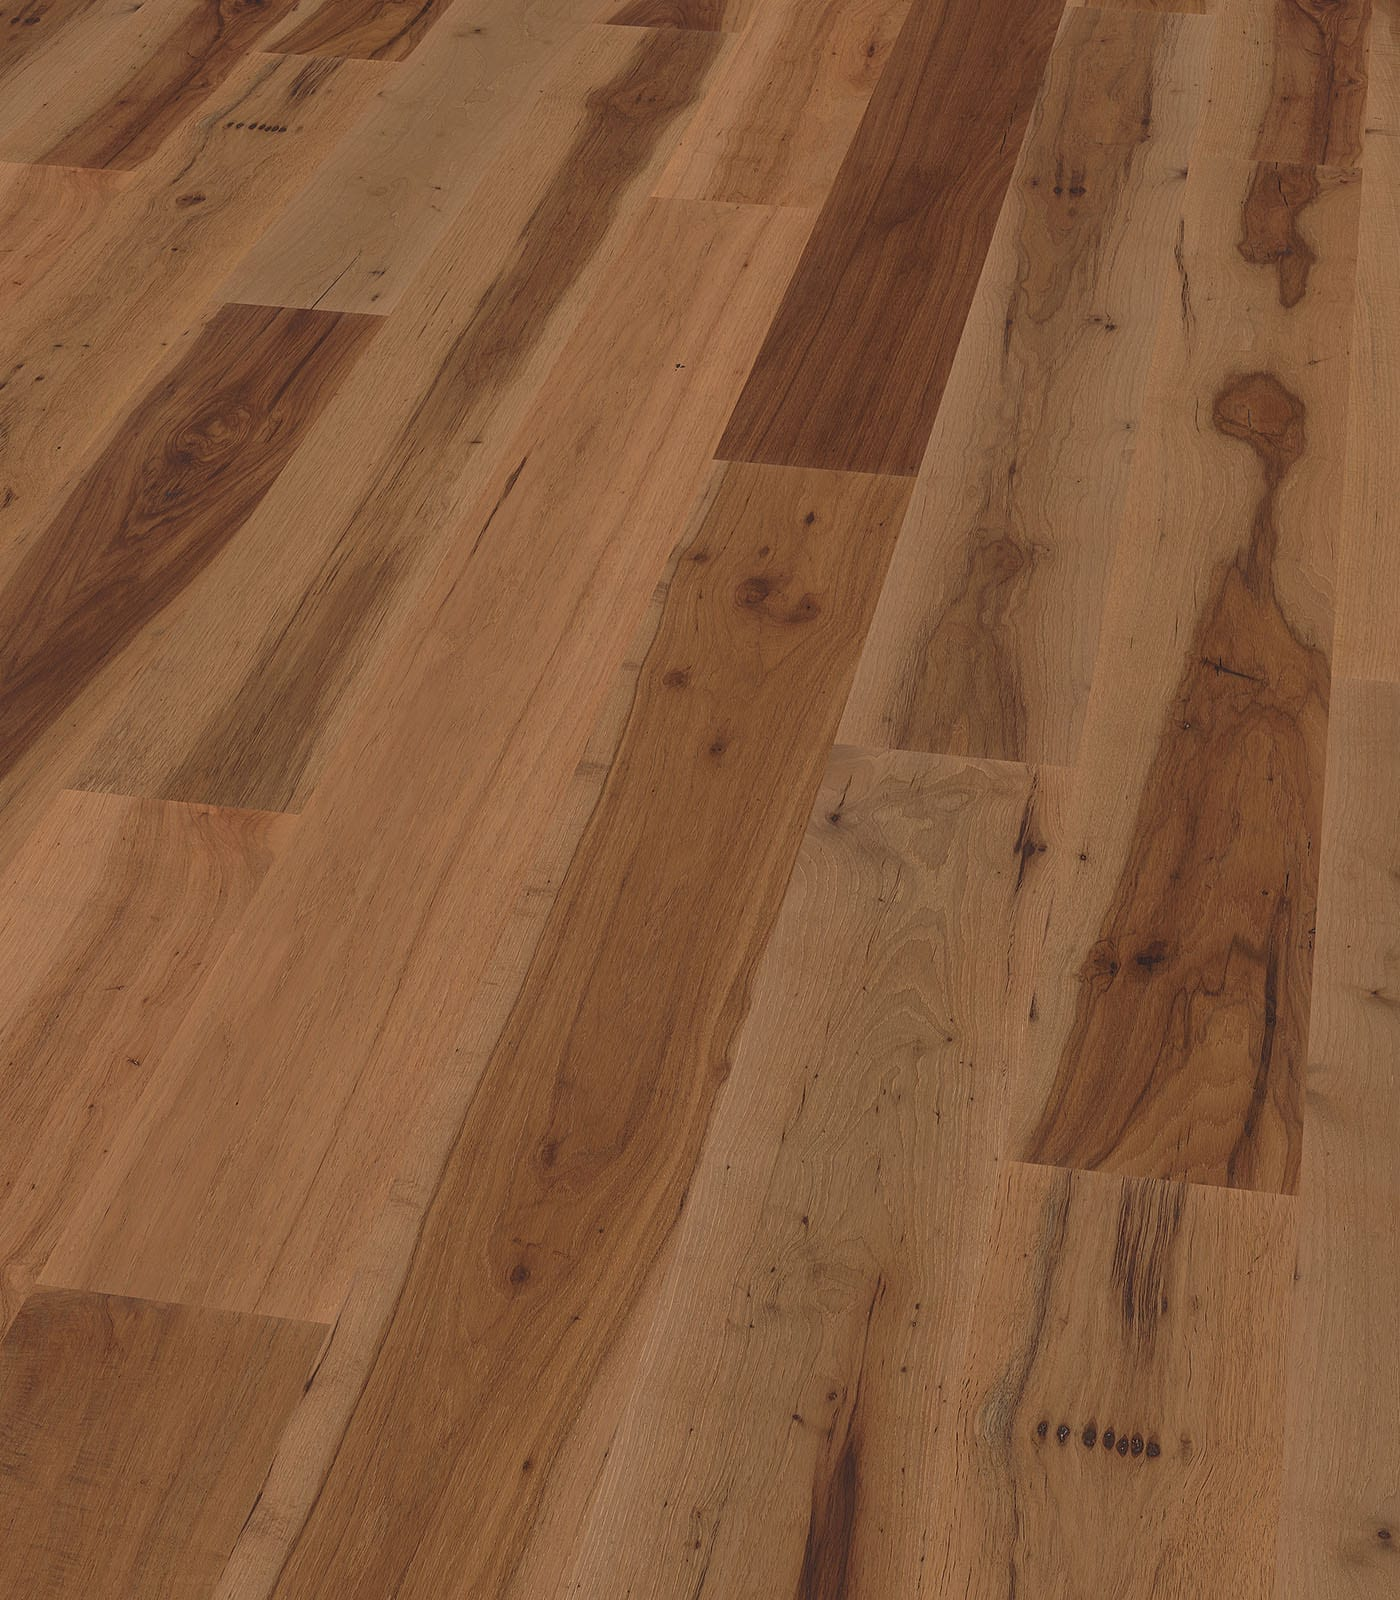 New Orleans-After Oak Collection-Pecan engineered floors - angle